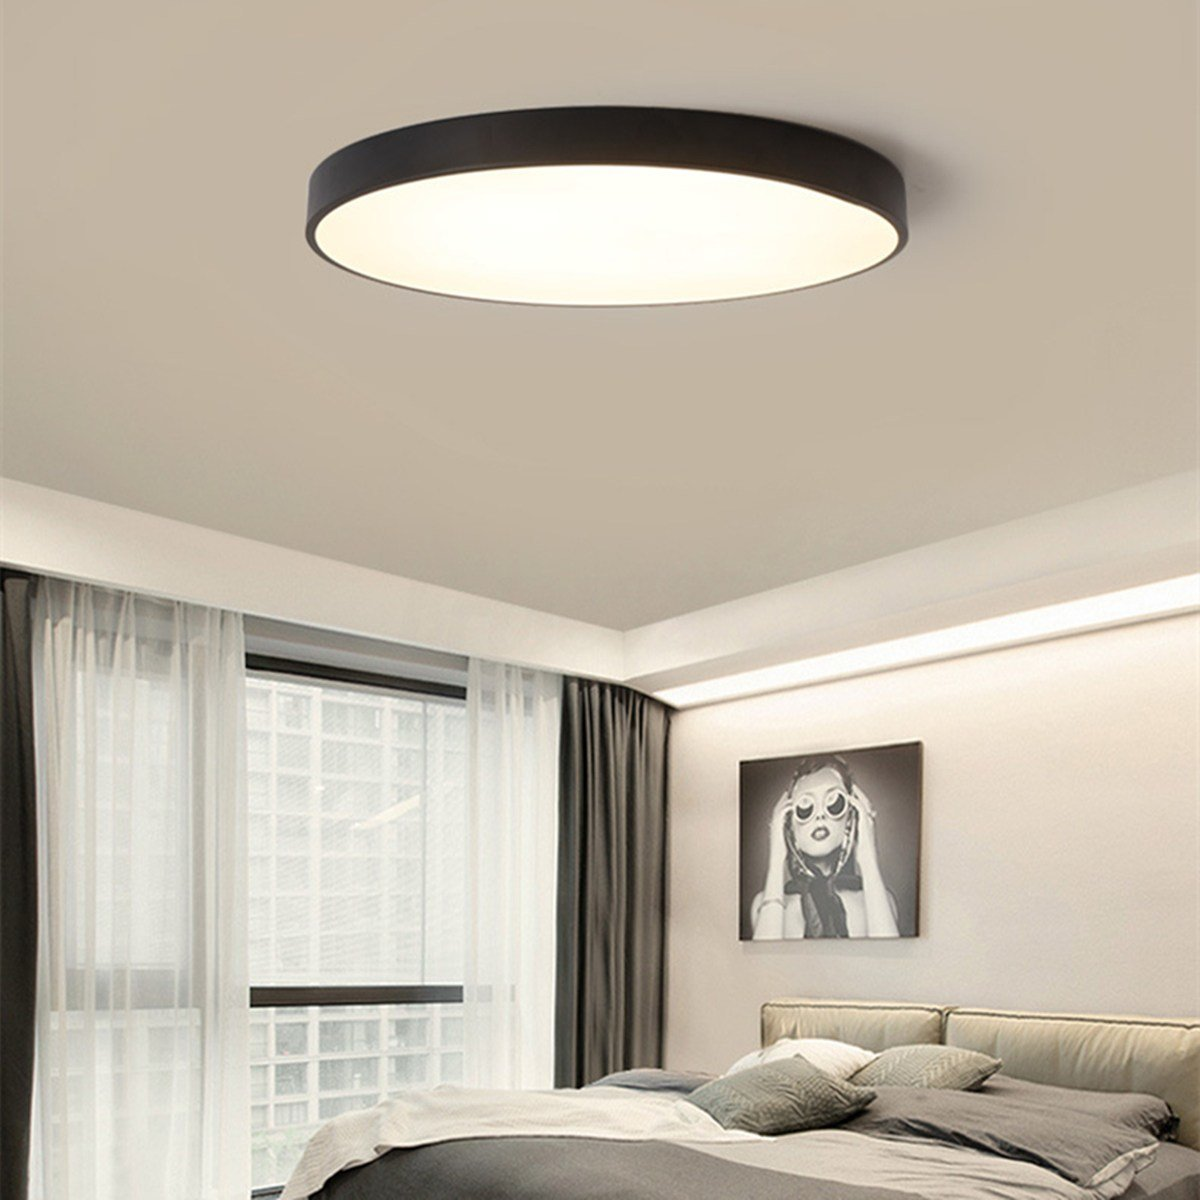 Best Round Led Ceiling Down Light Fixture Home Bedroom Living With Pictures